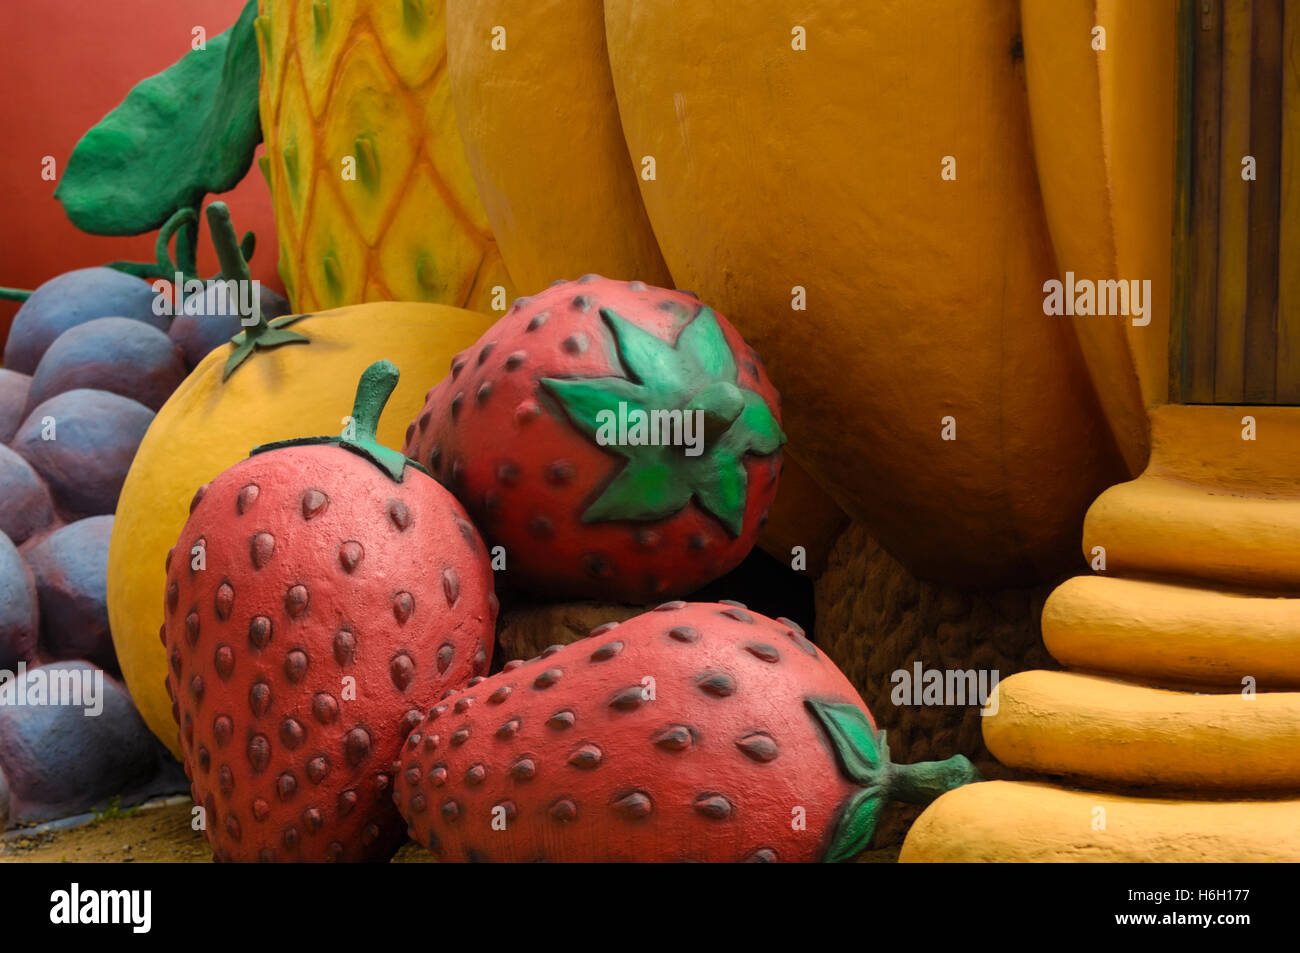 Fruit modelled in cement at an amusement part - Stock Image